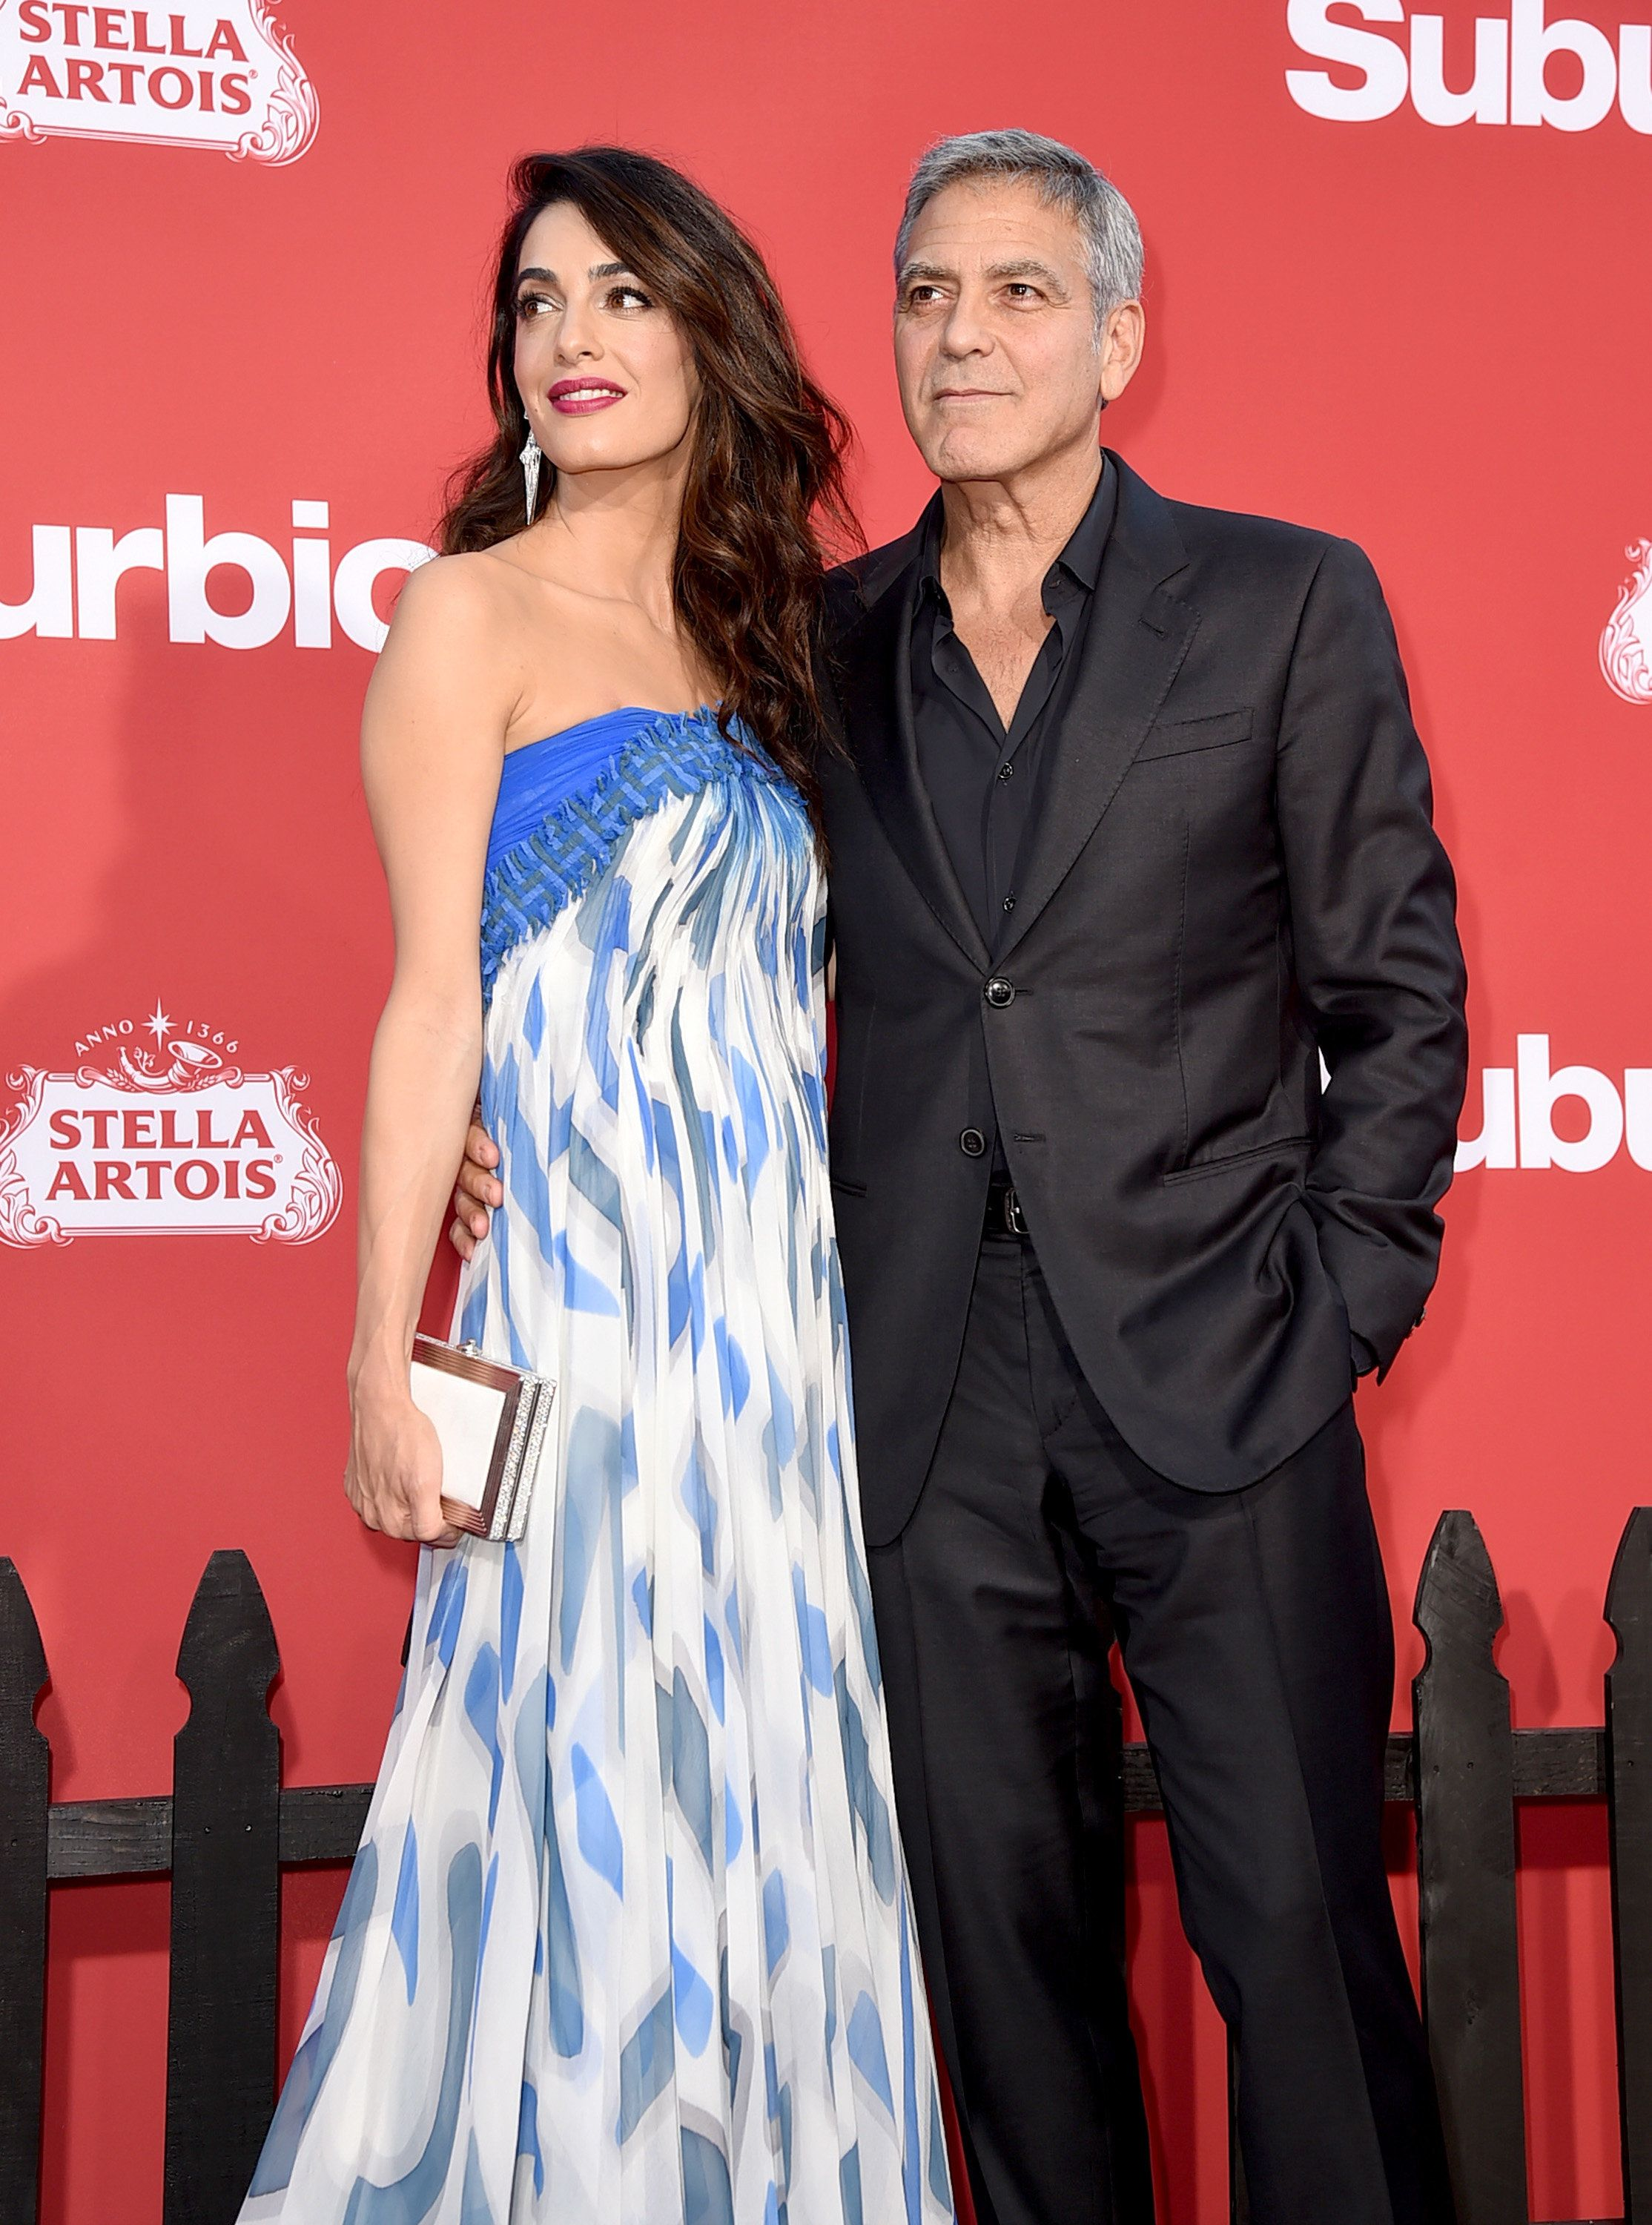 LOS ANGELES, CA - OCTOBER 22:  Executive producer George Clooney (R) and his wife Amal Clooney arrive at the premiere of Paramount Pictures' 'Suburbicon' at the Village Theatre on October 22, 2017 in Los Angeles, California.  (Photo by Kevin Winter/Getty Images)